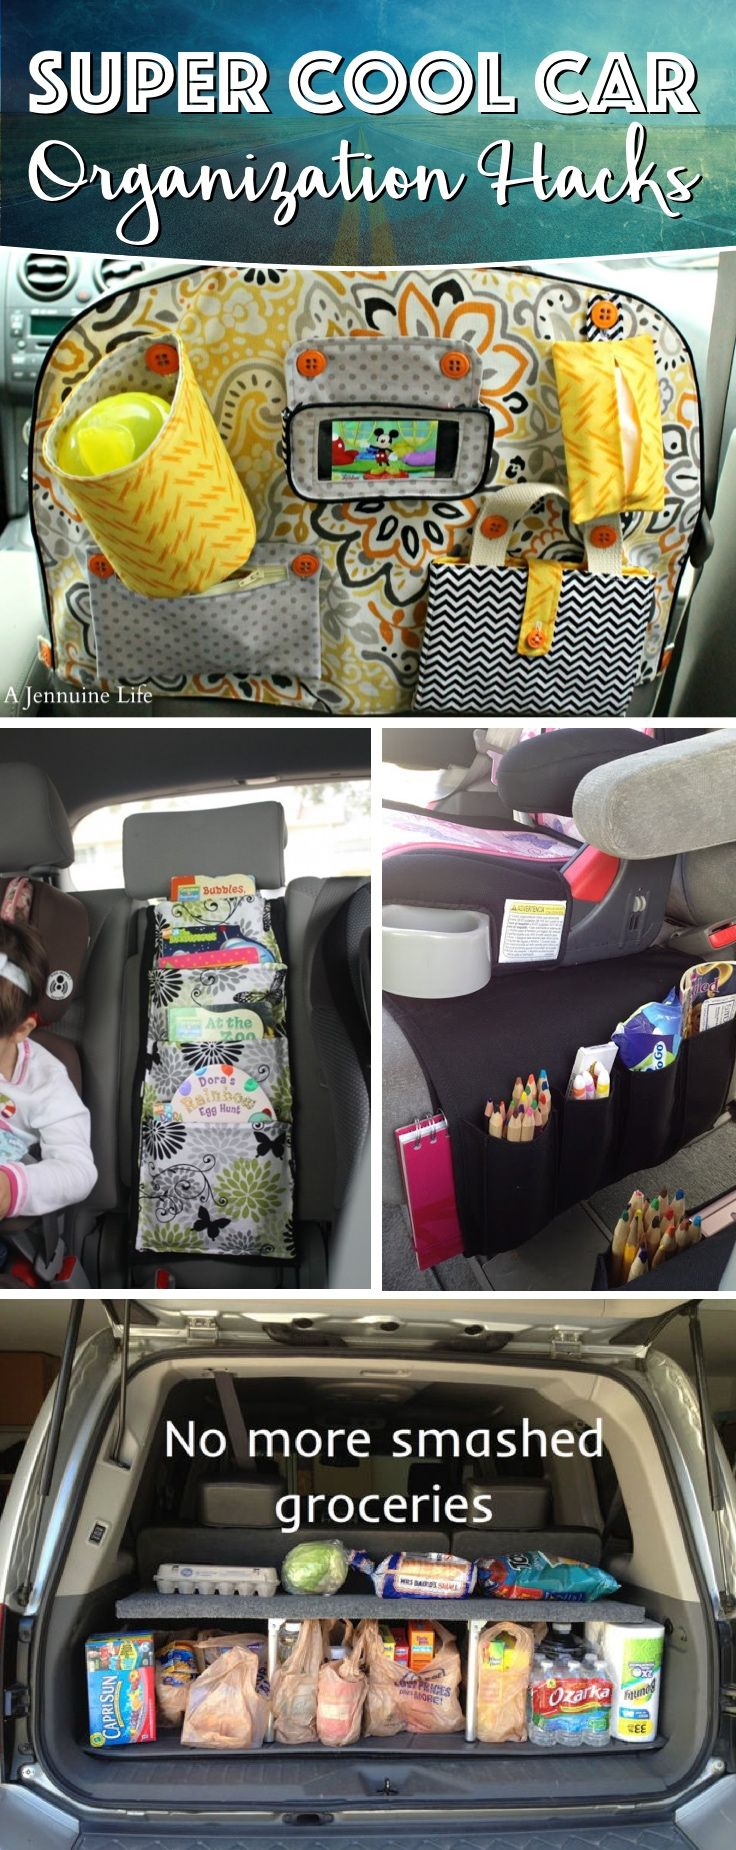 20 Super Cool Car Organization Hacks